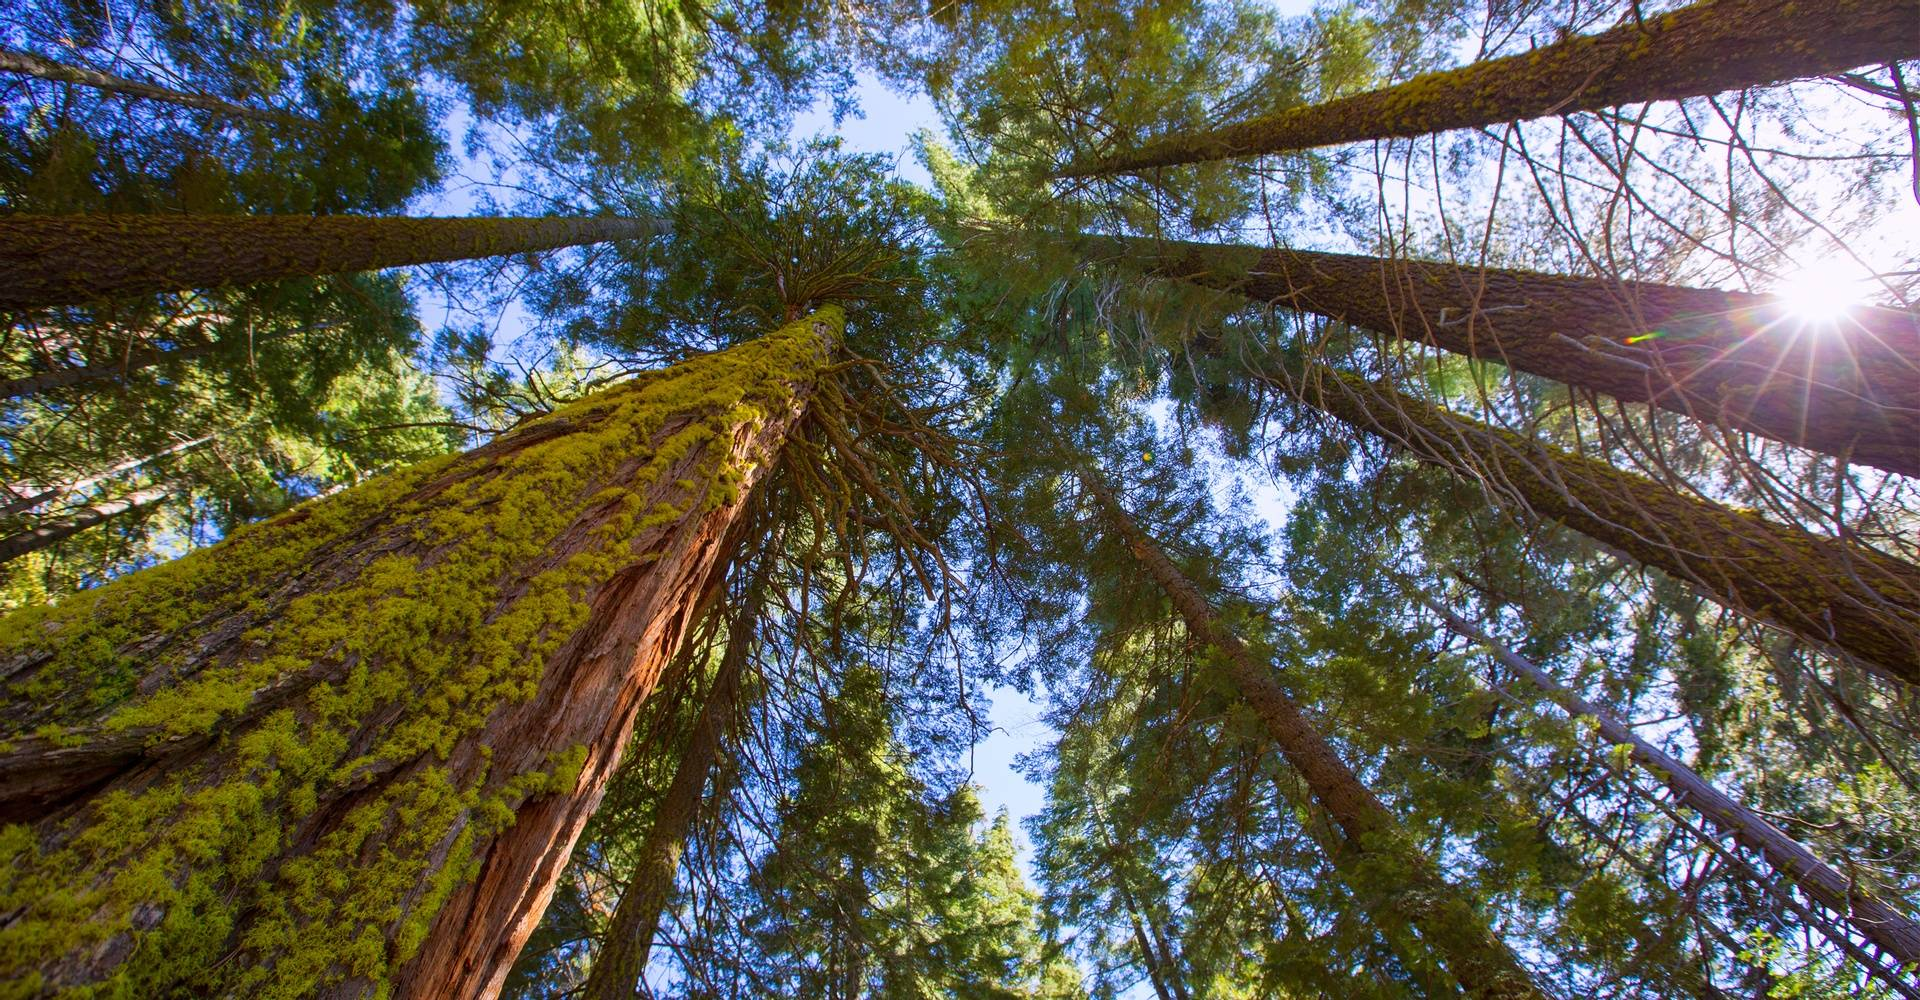 Ancient sequoia groves in Yosemite National Park.